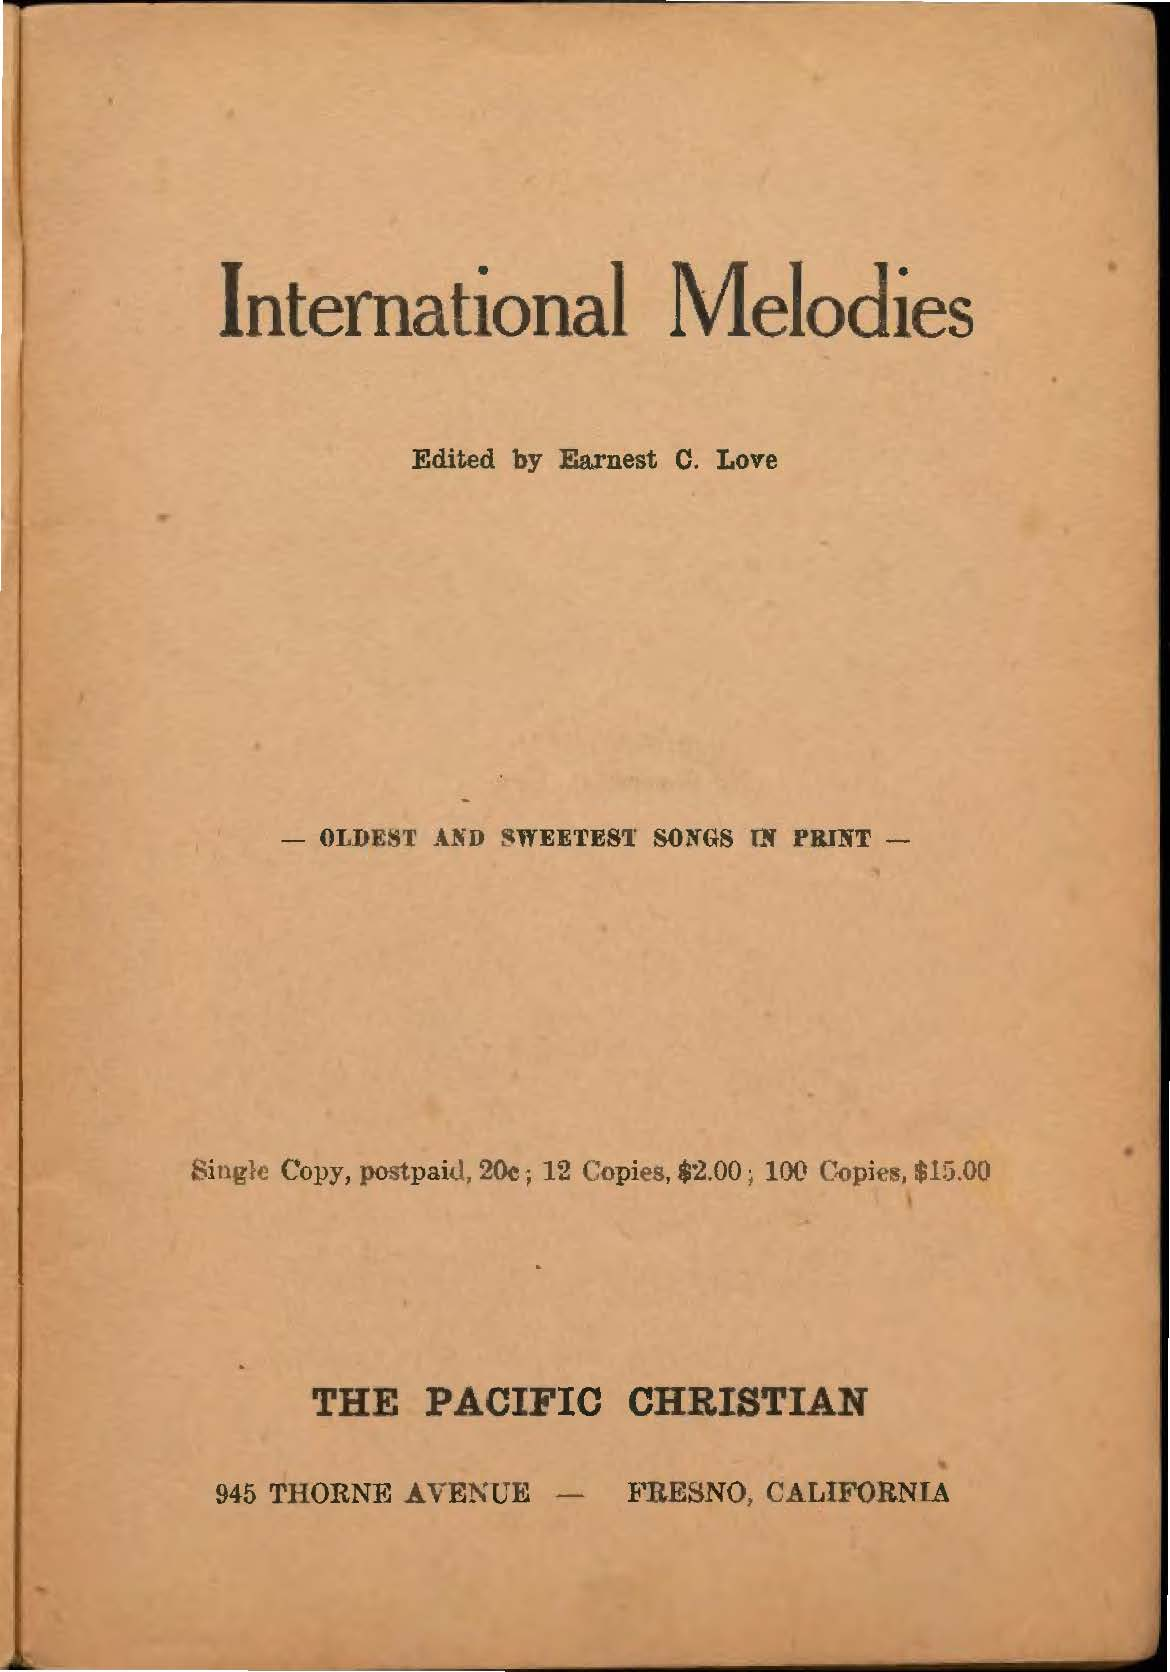 Earnest C. Love, International Melodies, 1924, title page